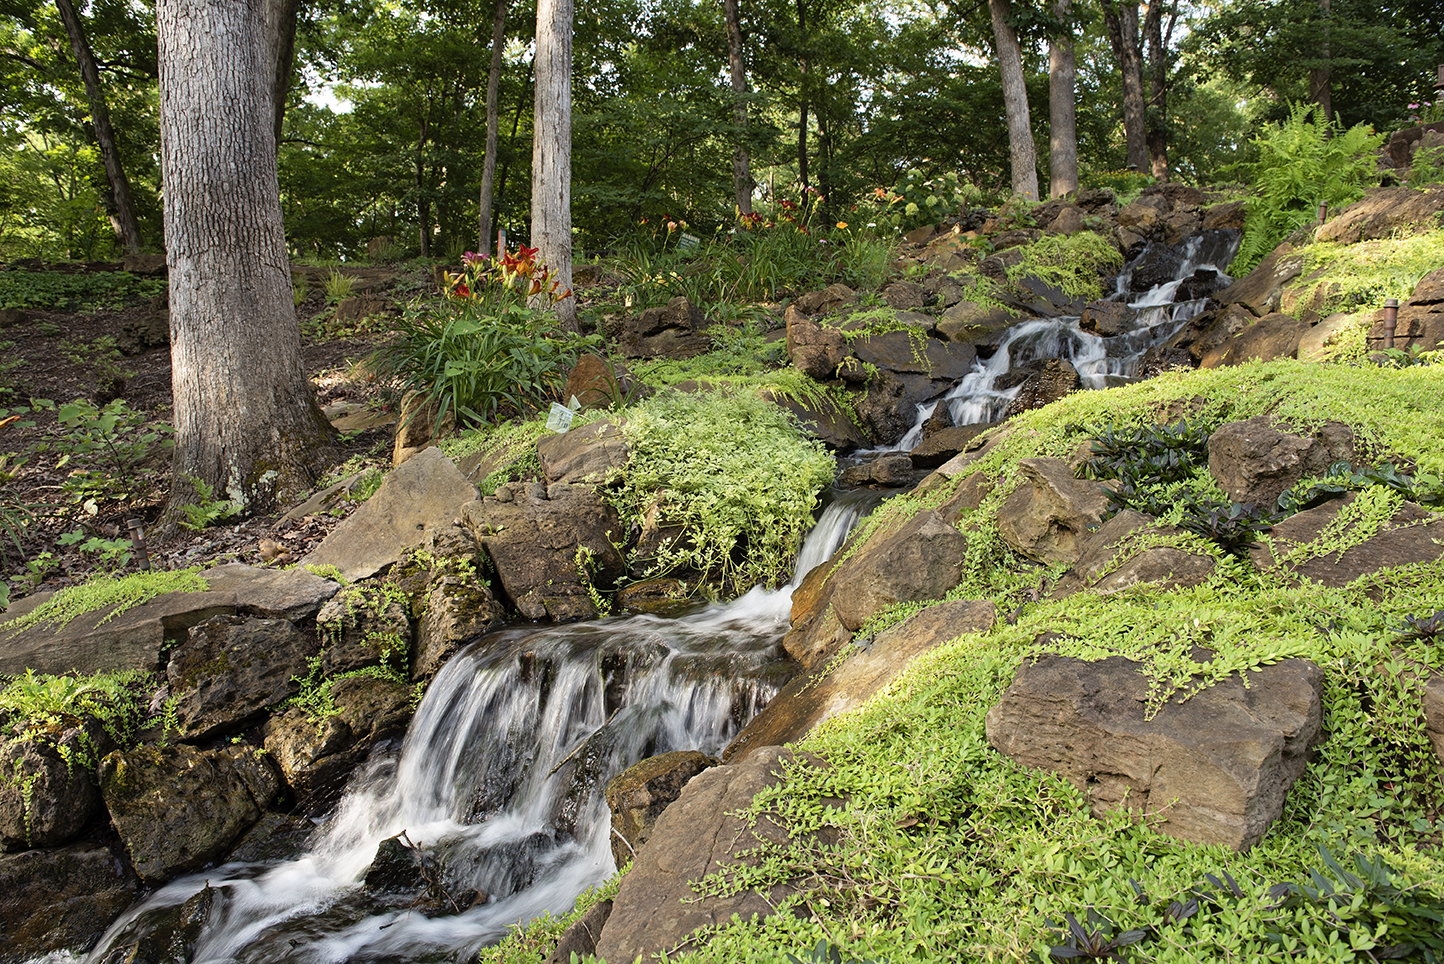 The Bauer brothers' lifelong passion for nature led them into an exclusive artistry designing and creating natural luxury waterfalls and koi ponds.